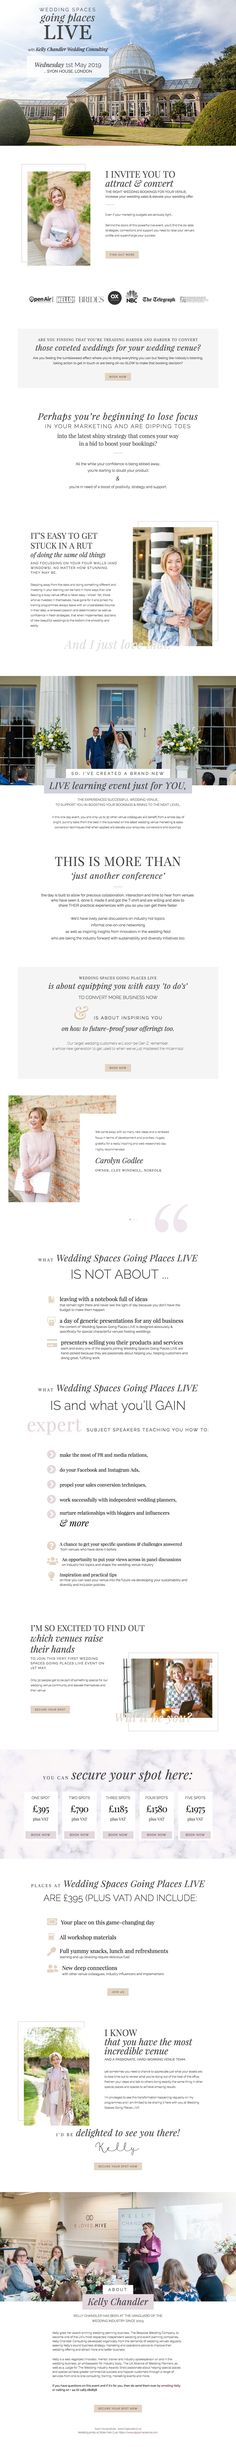 Ongoing coaching and branding client of Segerius Bruce Coaching. Sales page for in-person event for the UK wedding venue industry. Entrepreneur Magazine, Wedding Venues Uk, Brand Strategist, Success Coach, Famous Photographers, Photography Business, Personal Branding, Business Design, Coaching